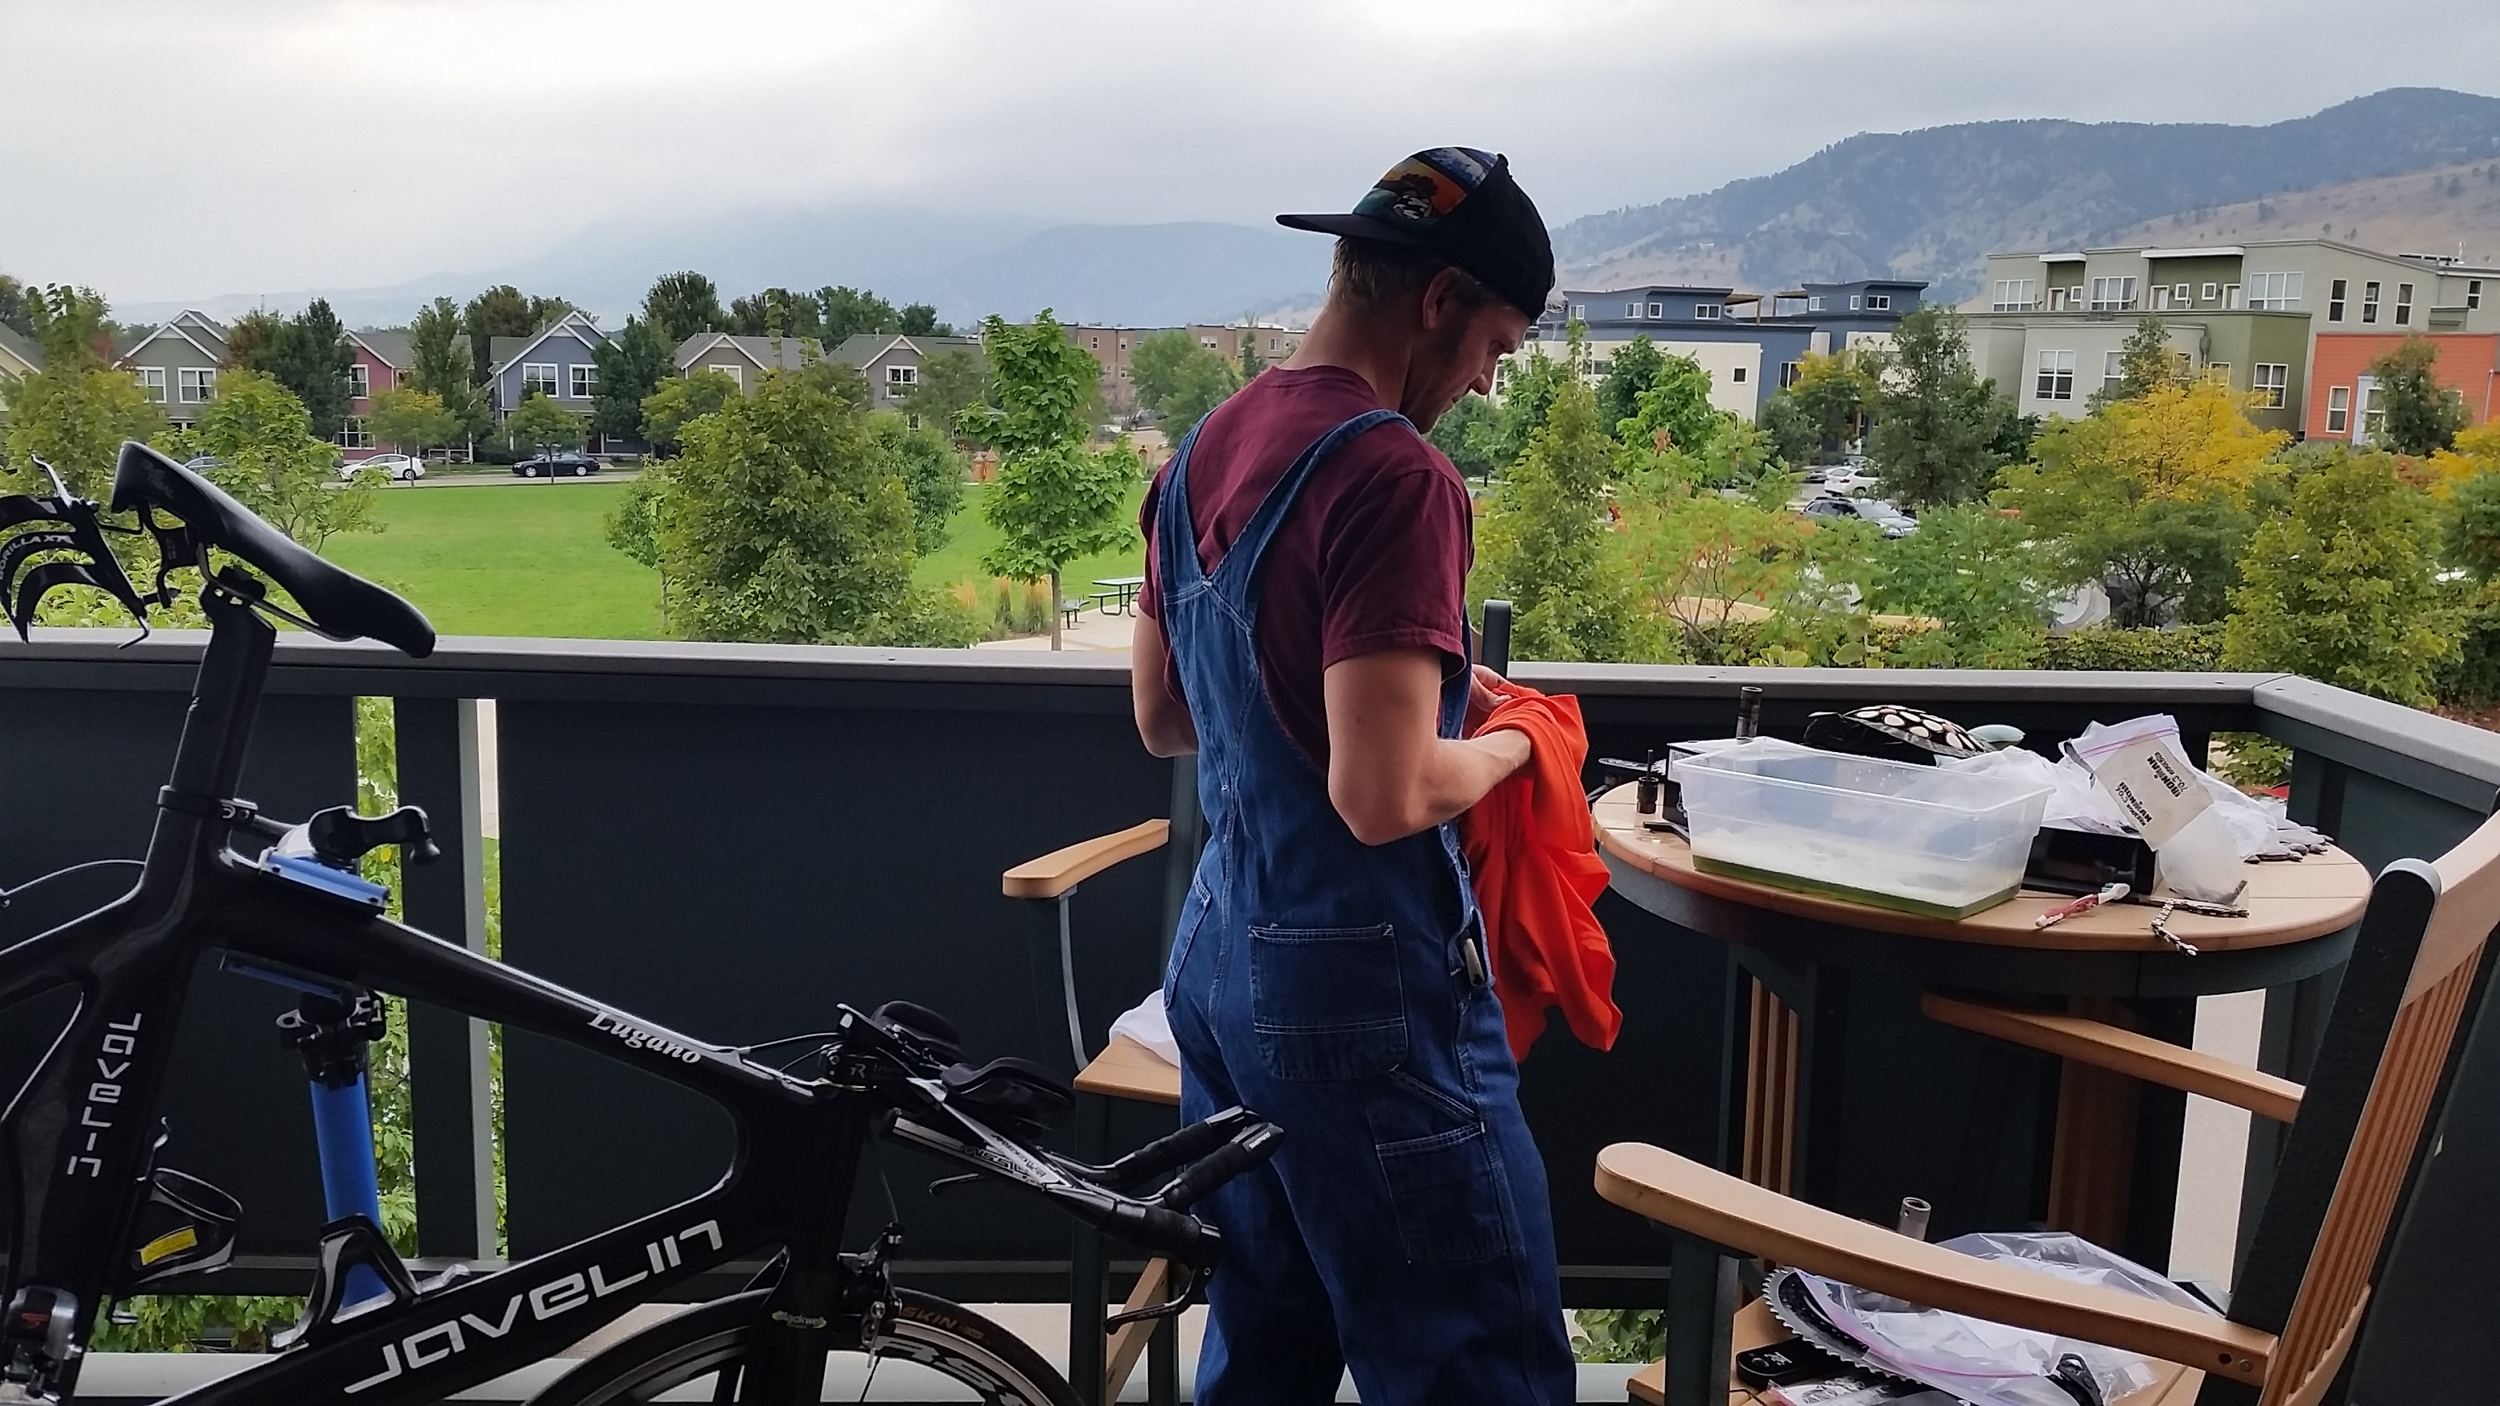 The overalls I'm wearing are not ironic, nor do they have anything to do with the fact that I went to Texas A&M. I actually find them to be quite helpful when doing extensive work on my bike.